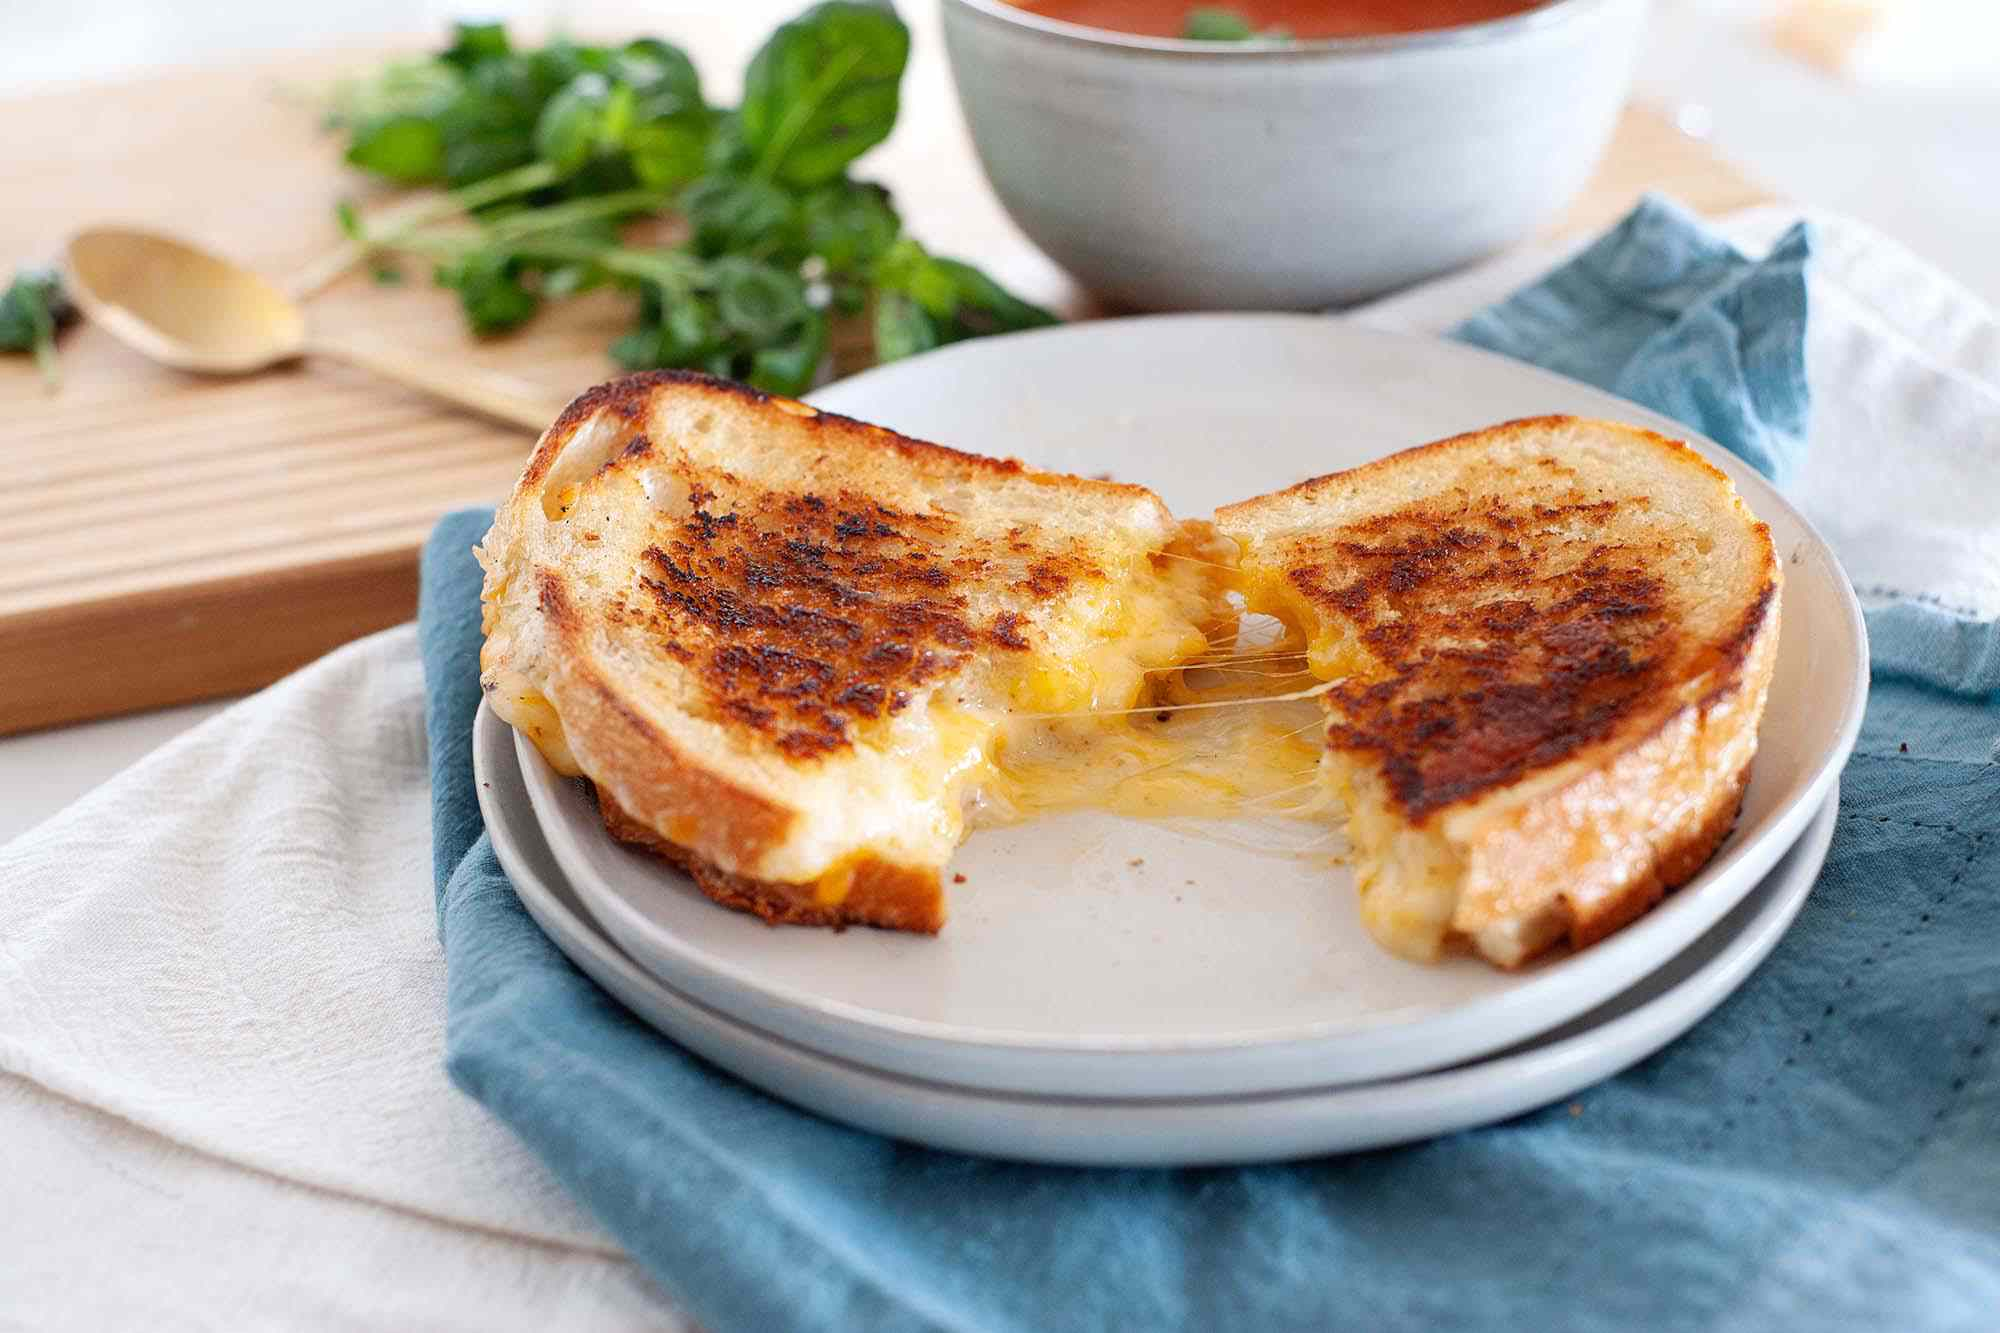 The perfect grilled cheese sandwich cut in half and split open on a plate with a blue napkin underneath it and a bowl of tomato soup in the background.